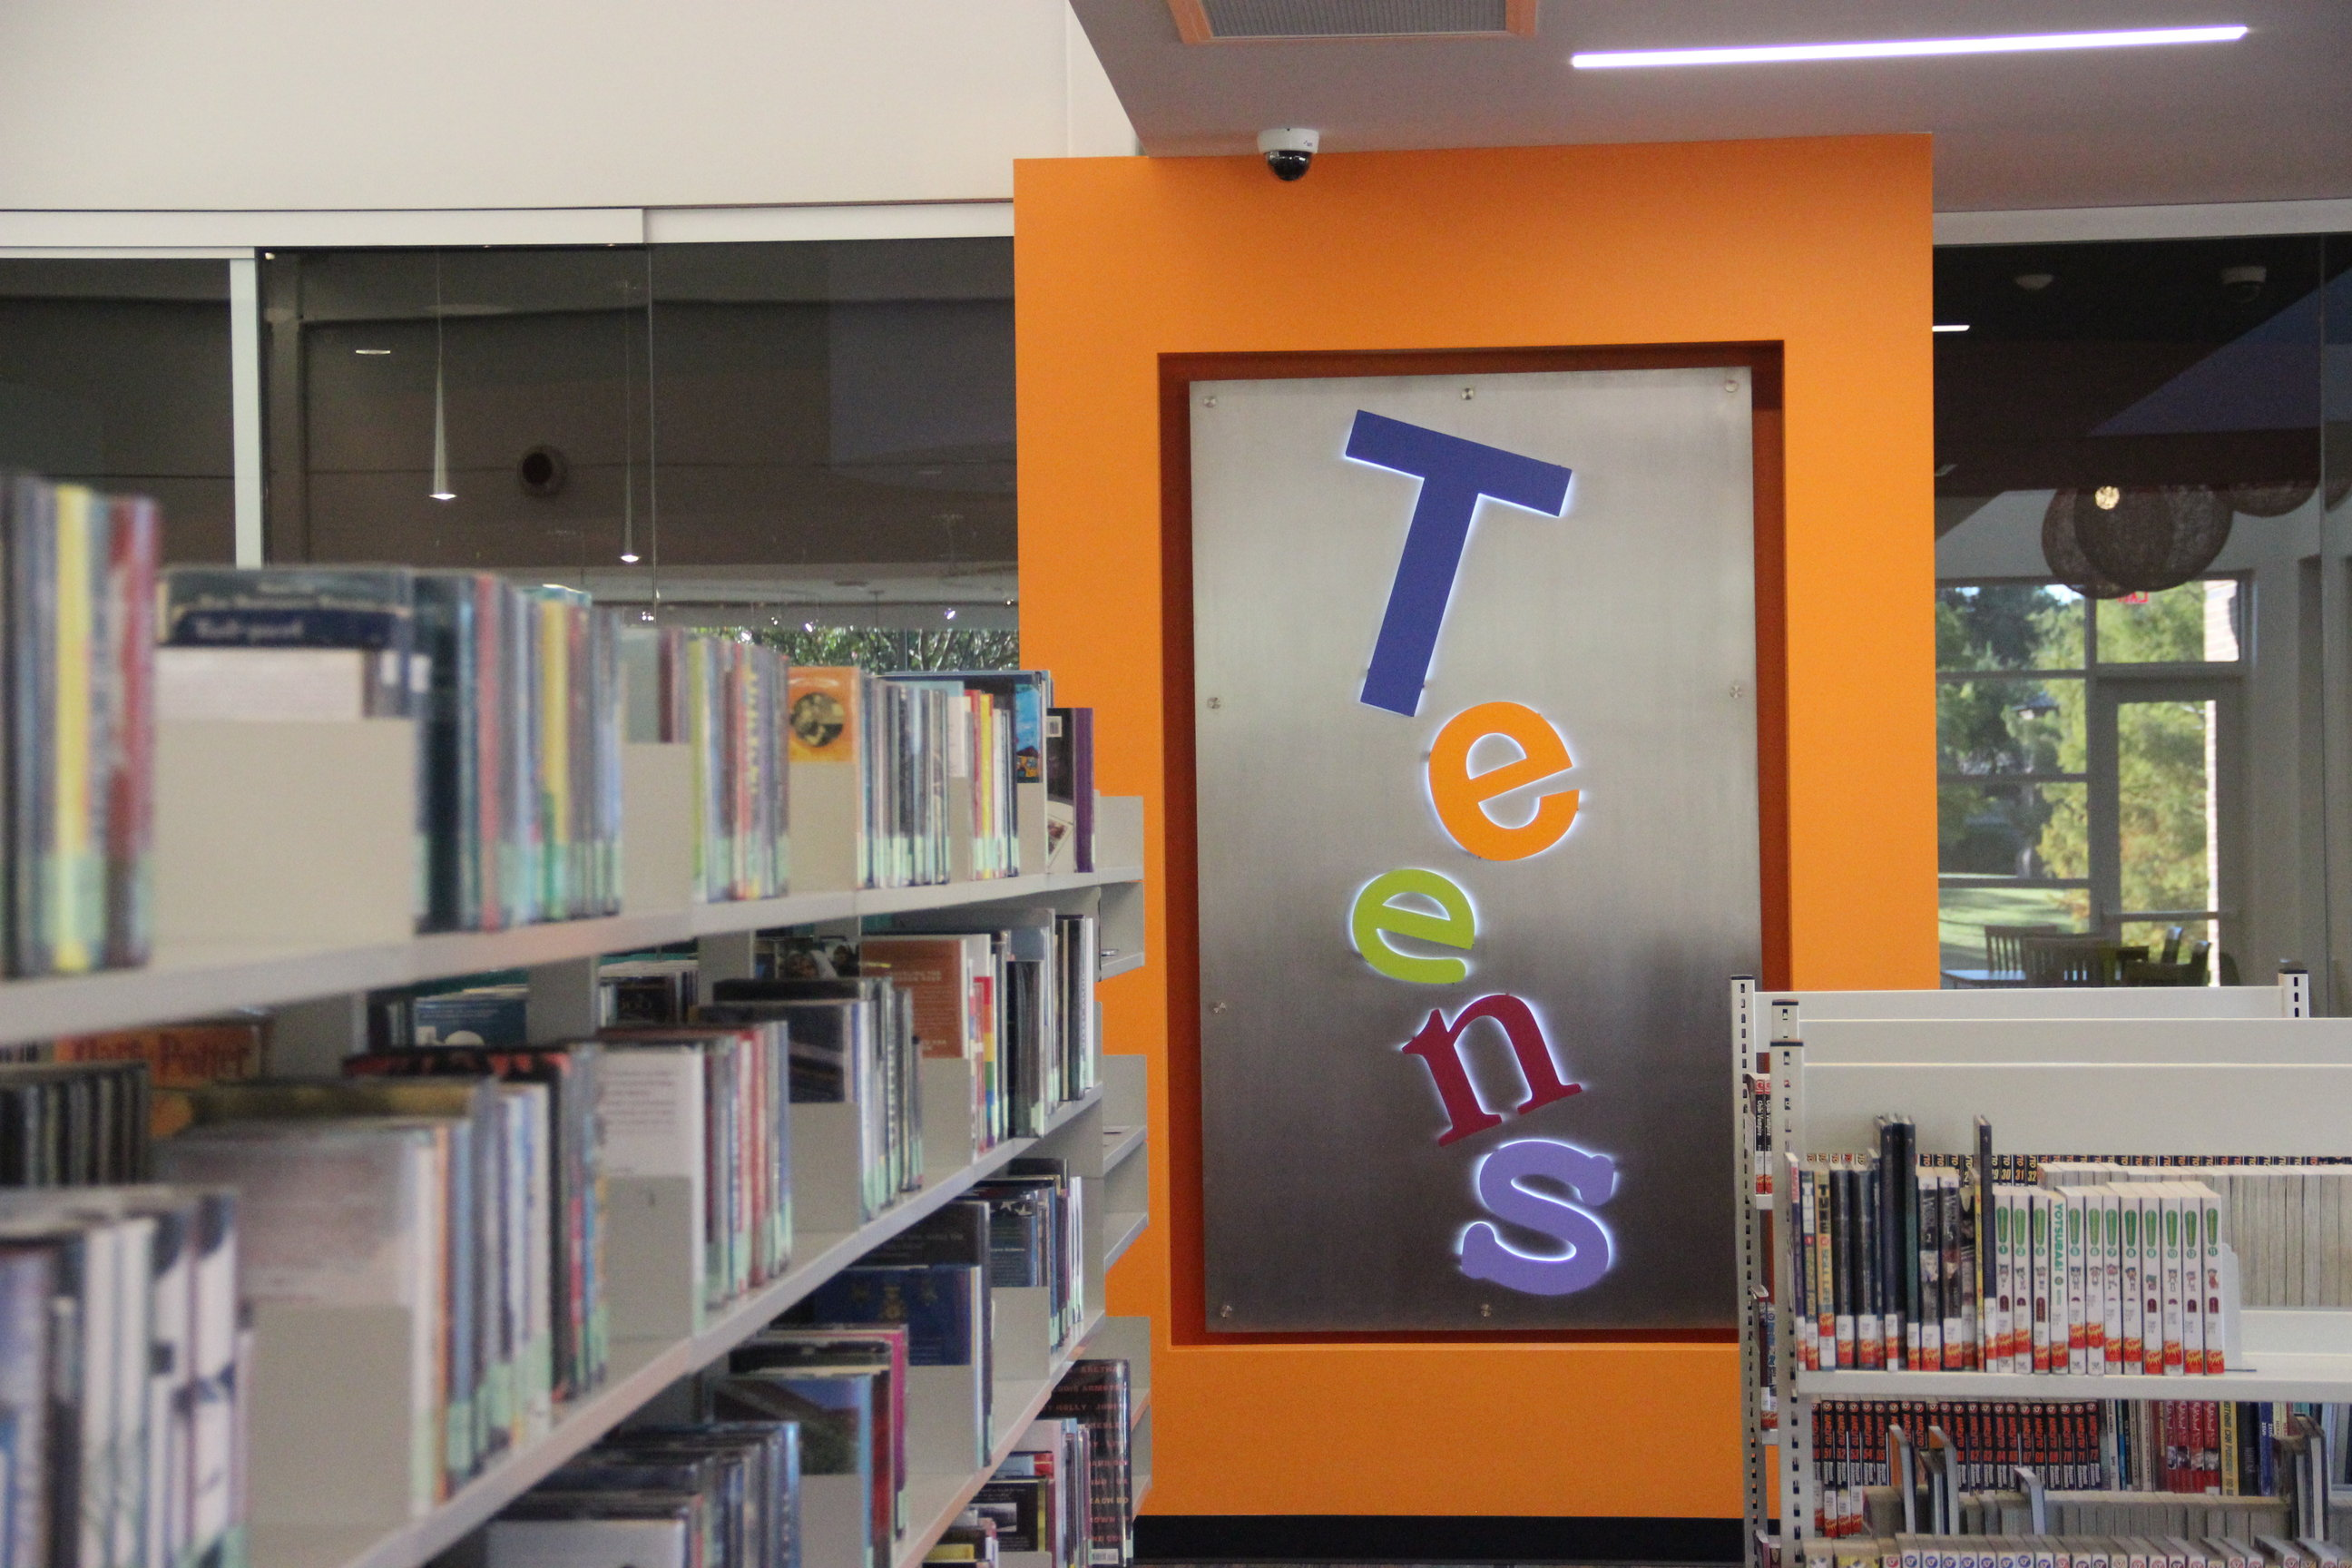 One+of+the+many+new+spaces+in+the+William+T.+Cozby+public+library+is+designated+for+teens+to+have+a+place+to+study+quietly.+The+newly+renovated+Cozby+Library+is+now+open+to+the+public%2C+but+will+have+its+official+opening+ceremony+on+Nov.+20.%0A%0A